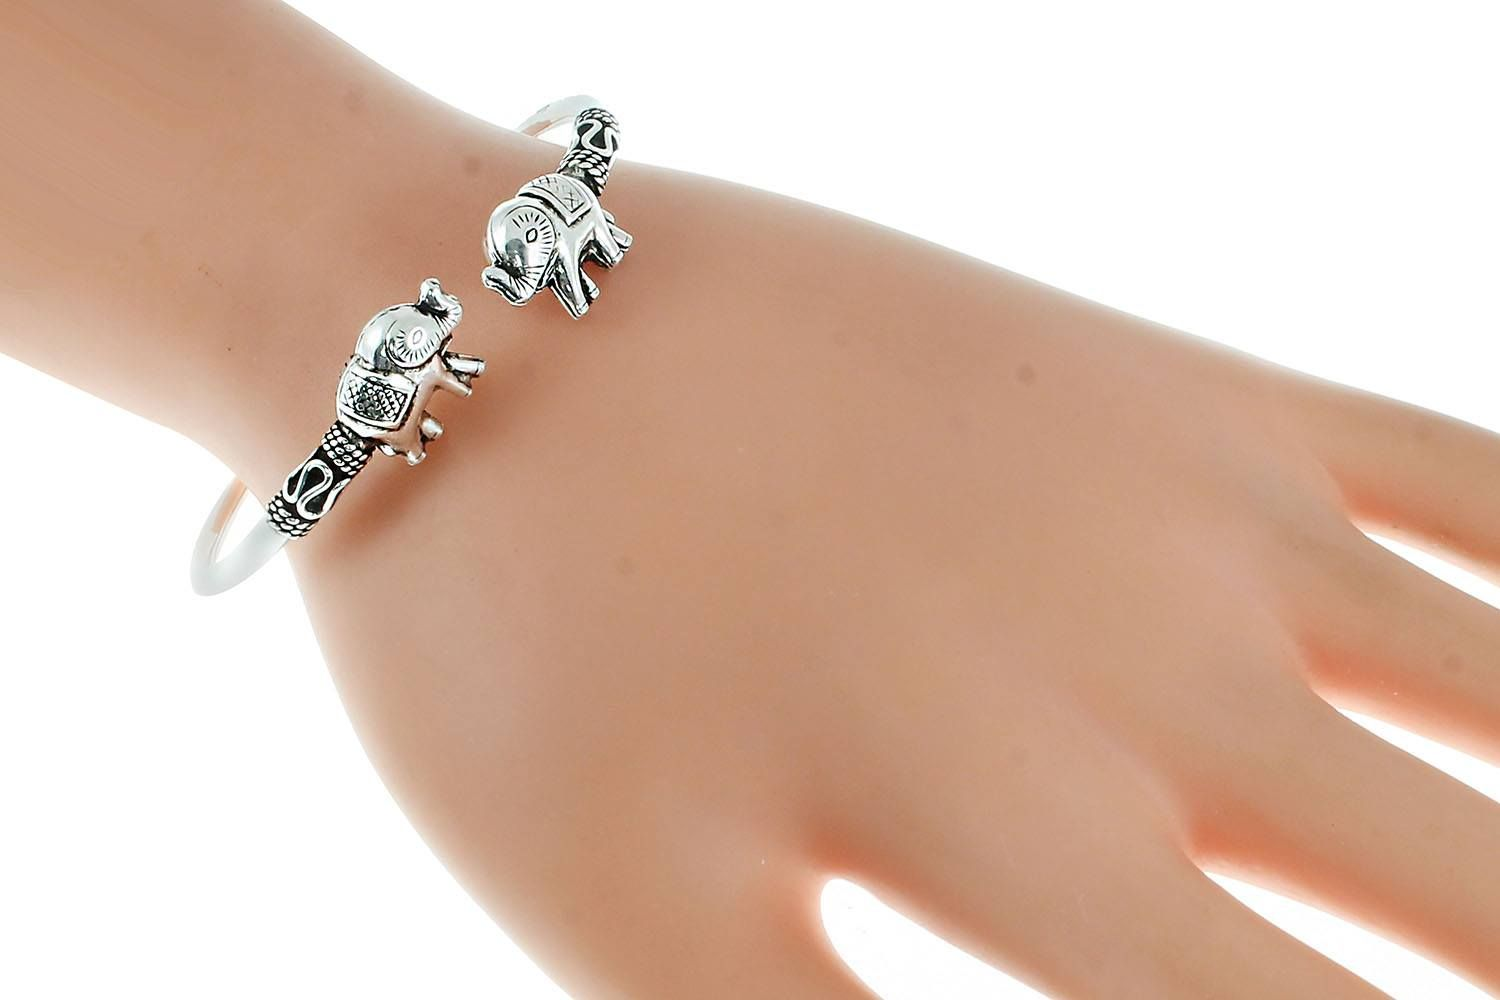 Cuff two elephant bracelet code ms with price le goo